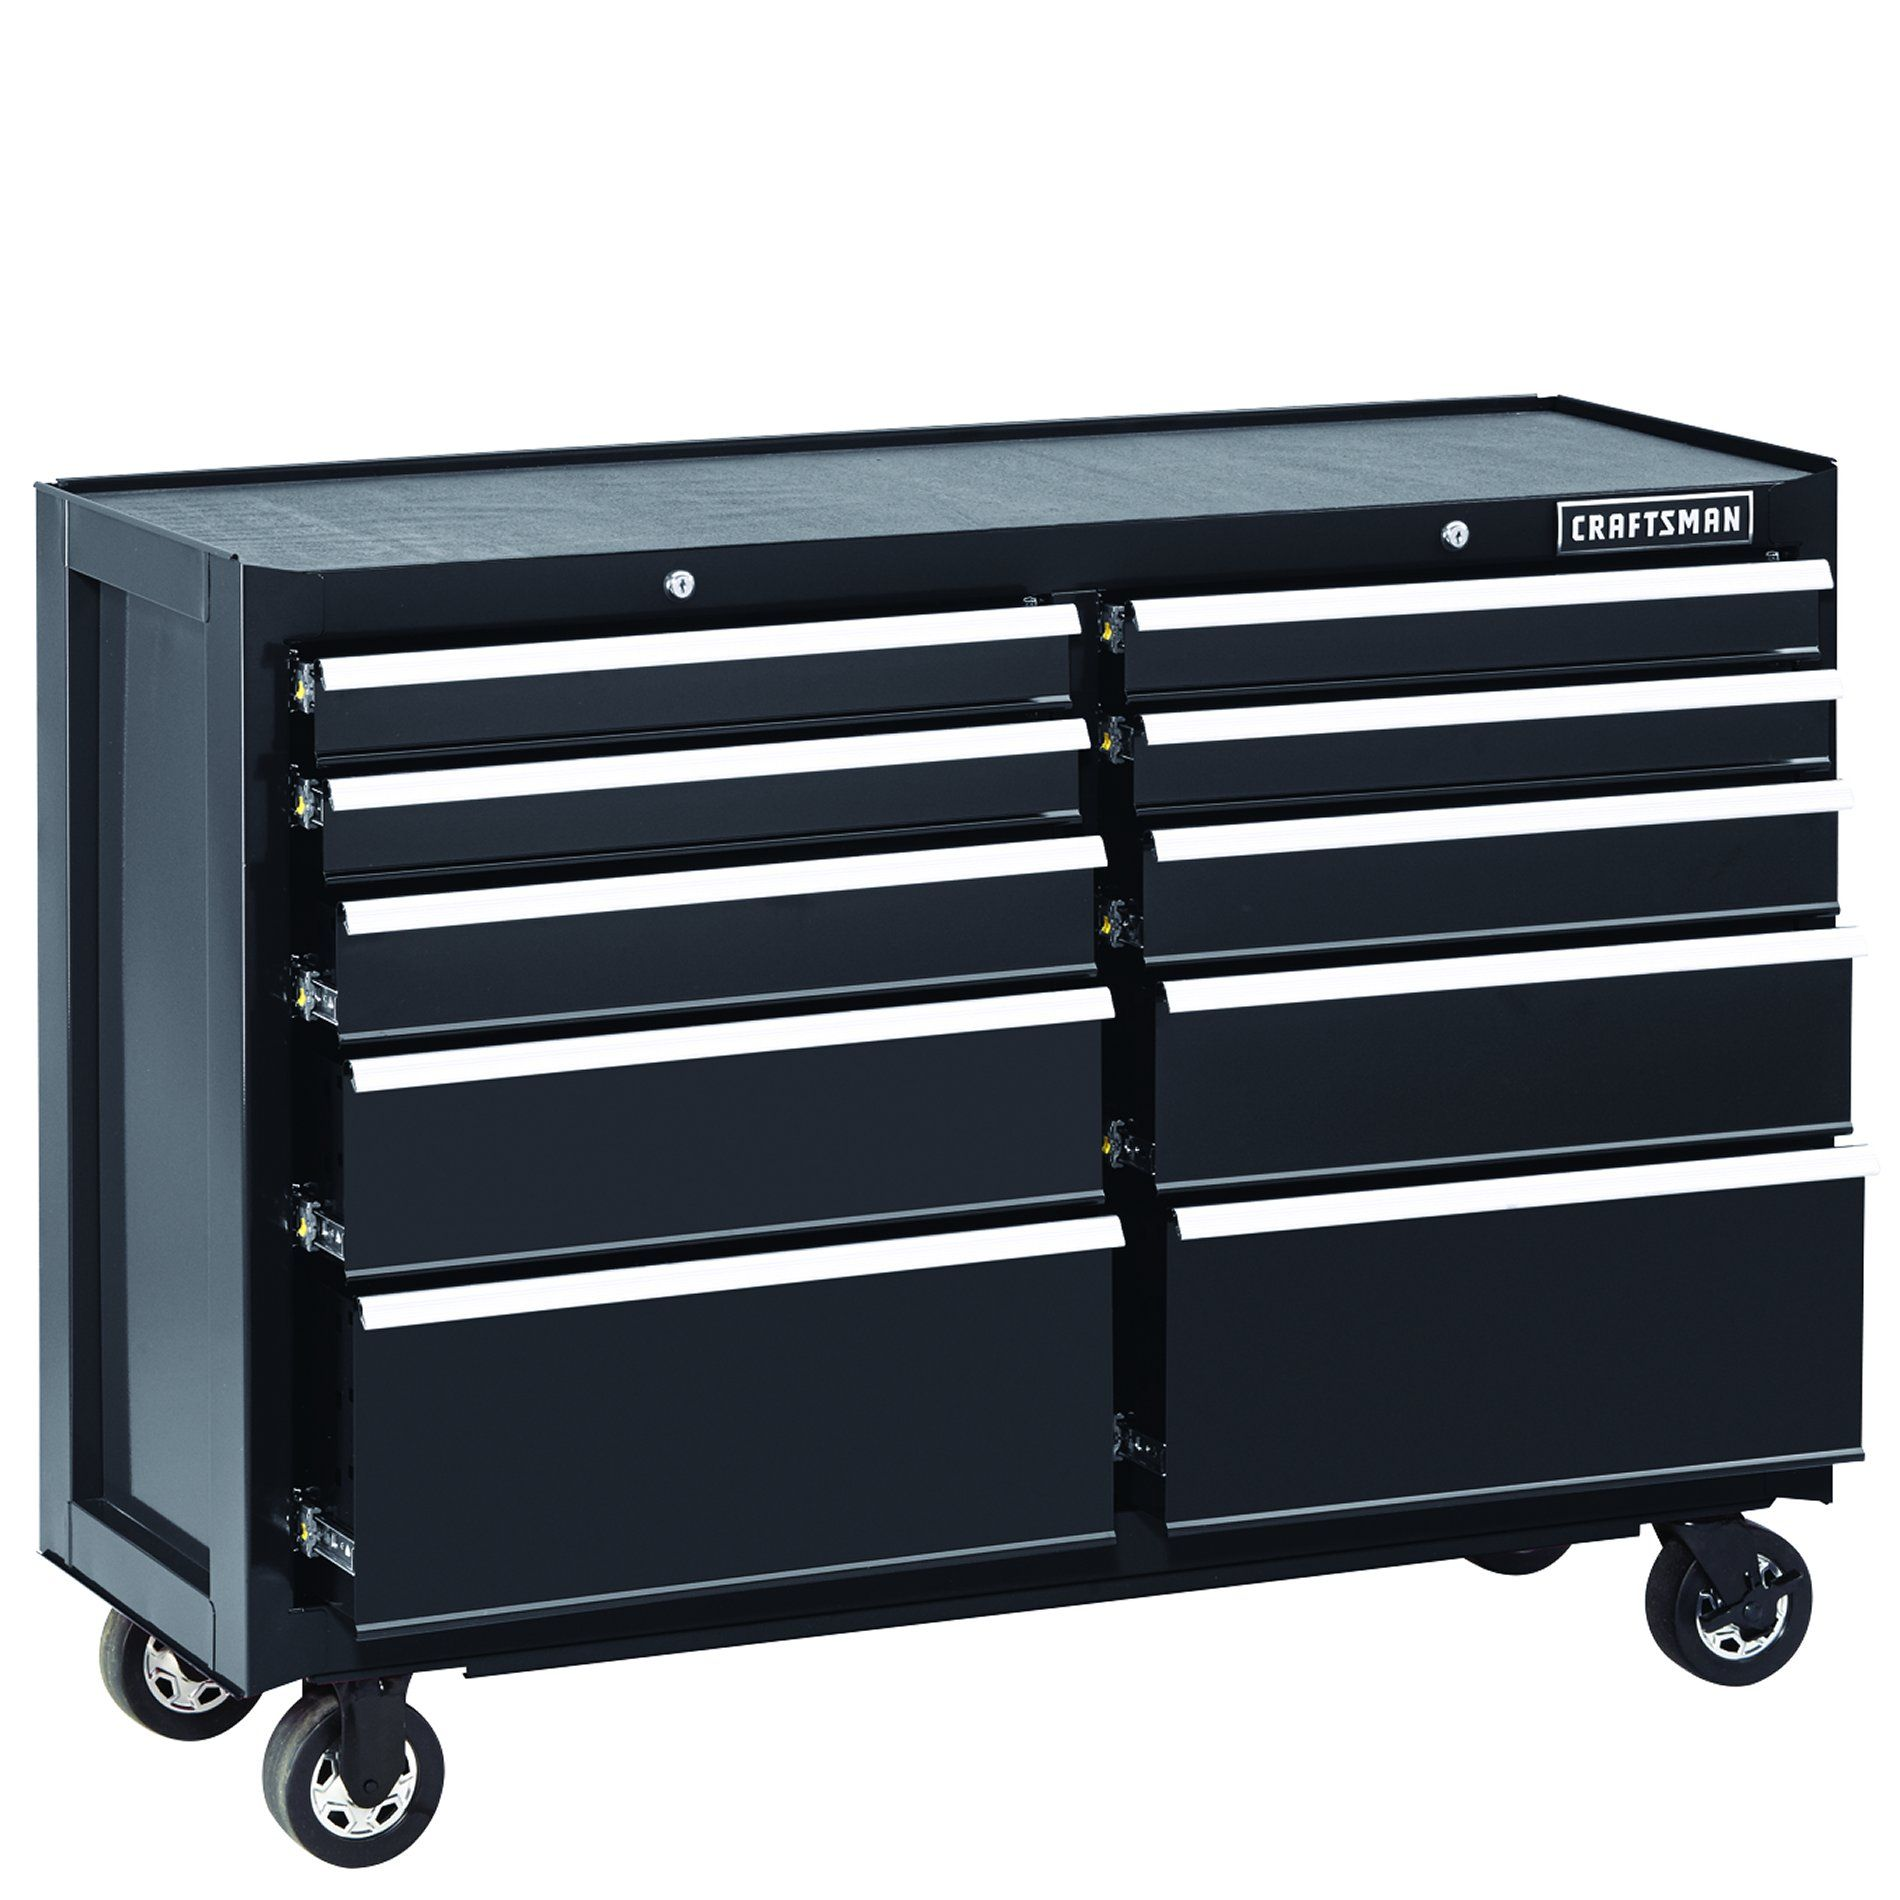 Craftsman 52 Quot 10 Drawer Heavy Duty Rolling Cart Black In 2020 Tool Storage Tool Chest Rolling Cart